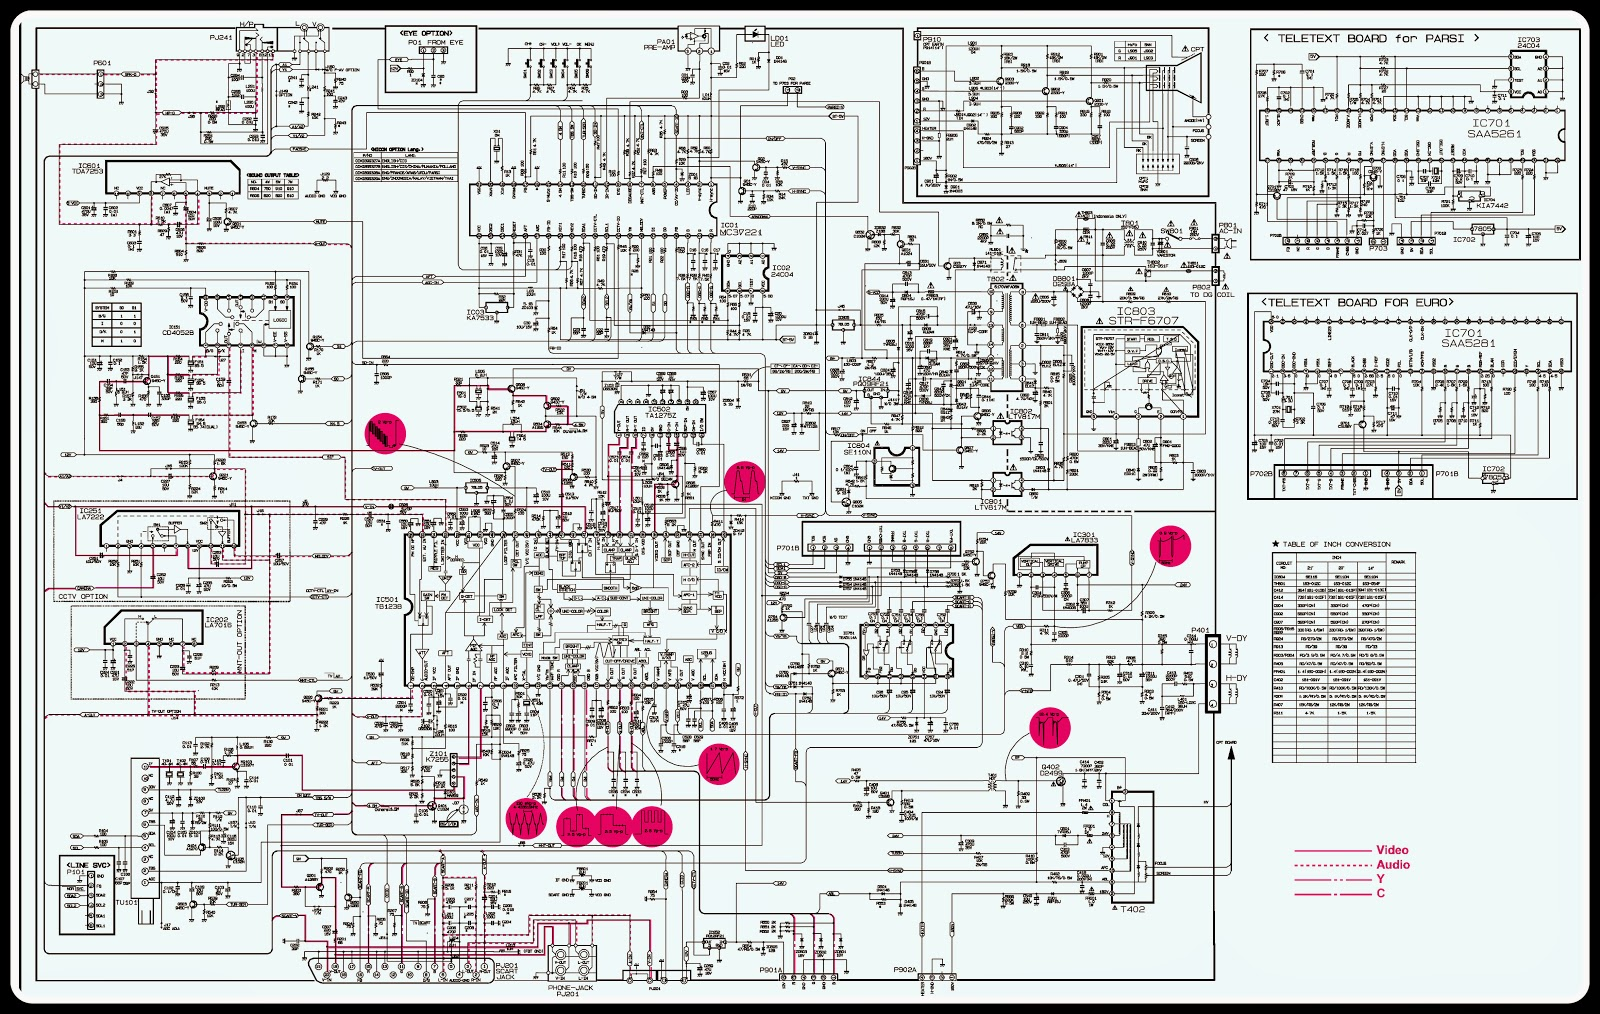 ge monitor top wiring diagram ge general electric monitor ... on